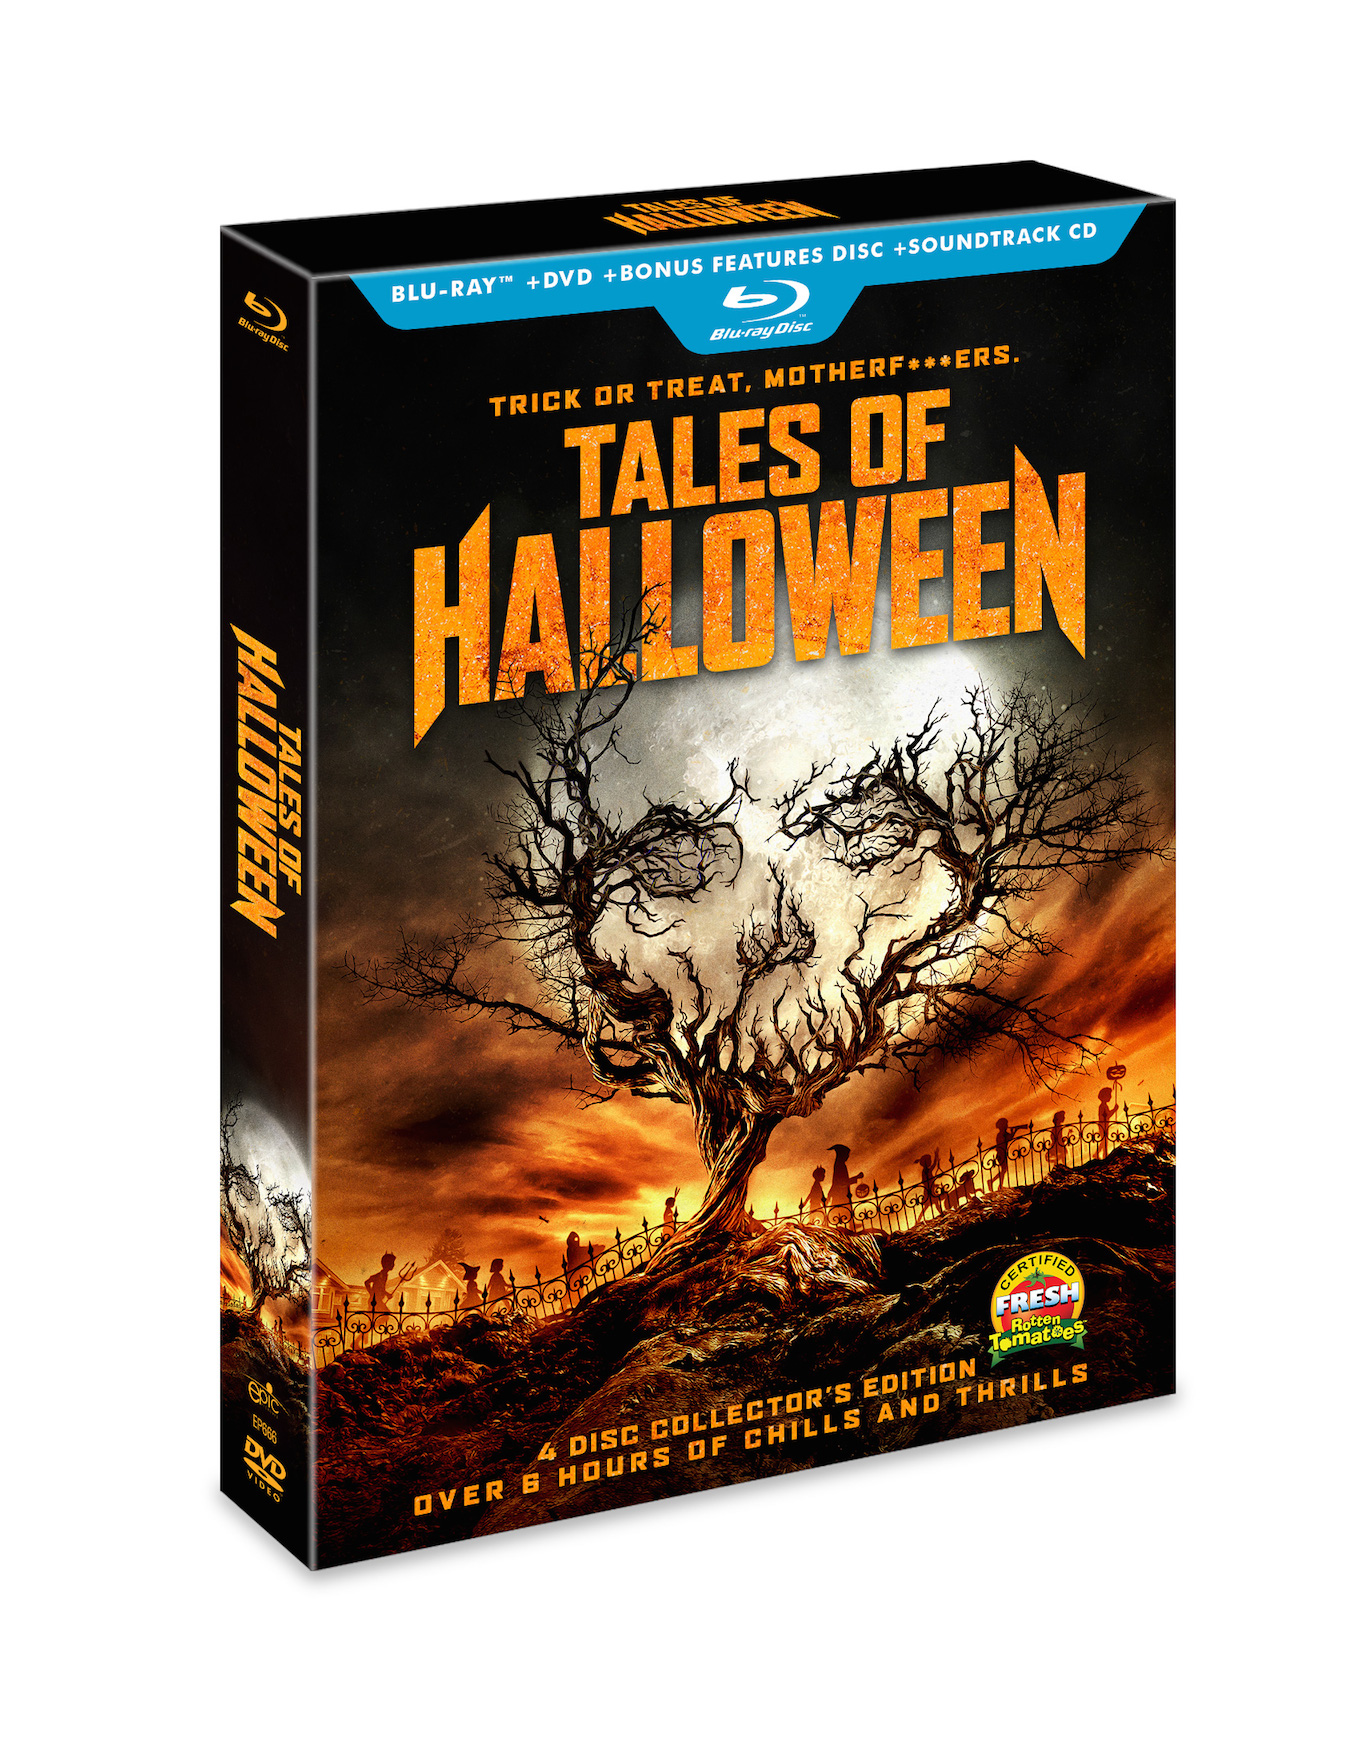 Halloween Dvd Box Set.Tales Of Halloween Arrives In September From Epic Pictures Sci Fi